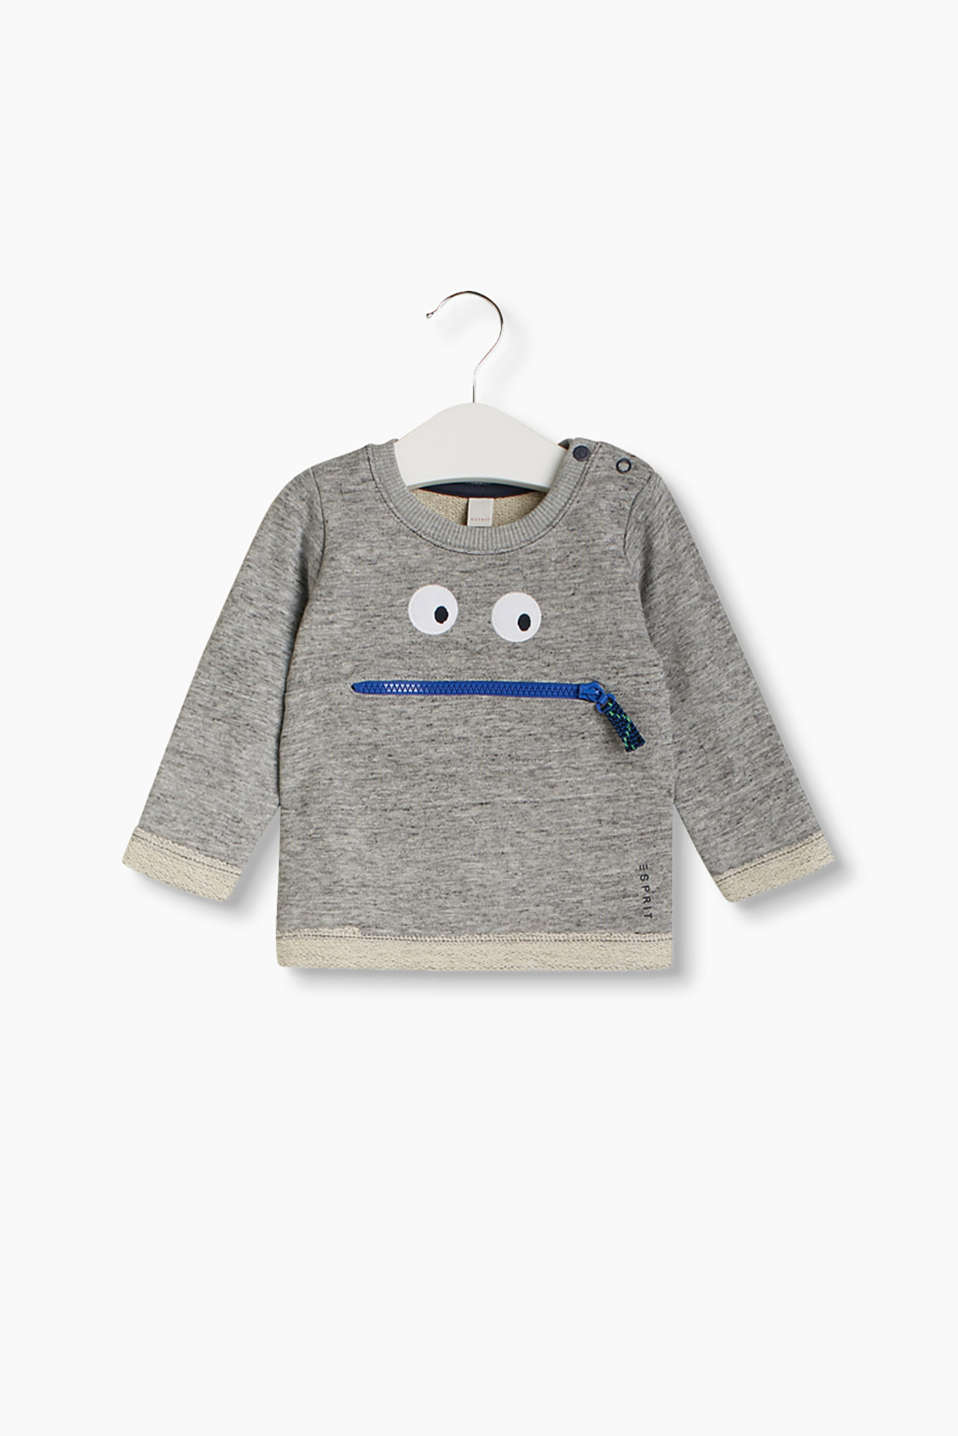 Melange sweatshirt with a comic monster face and fixed turn-up cuffs